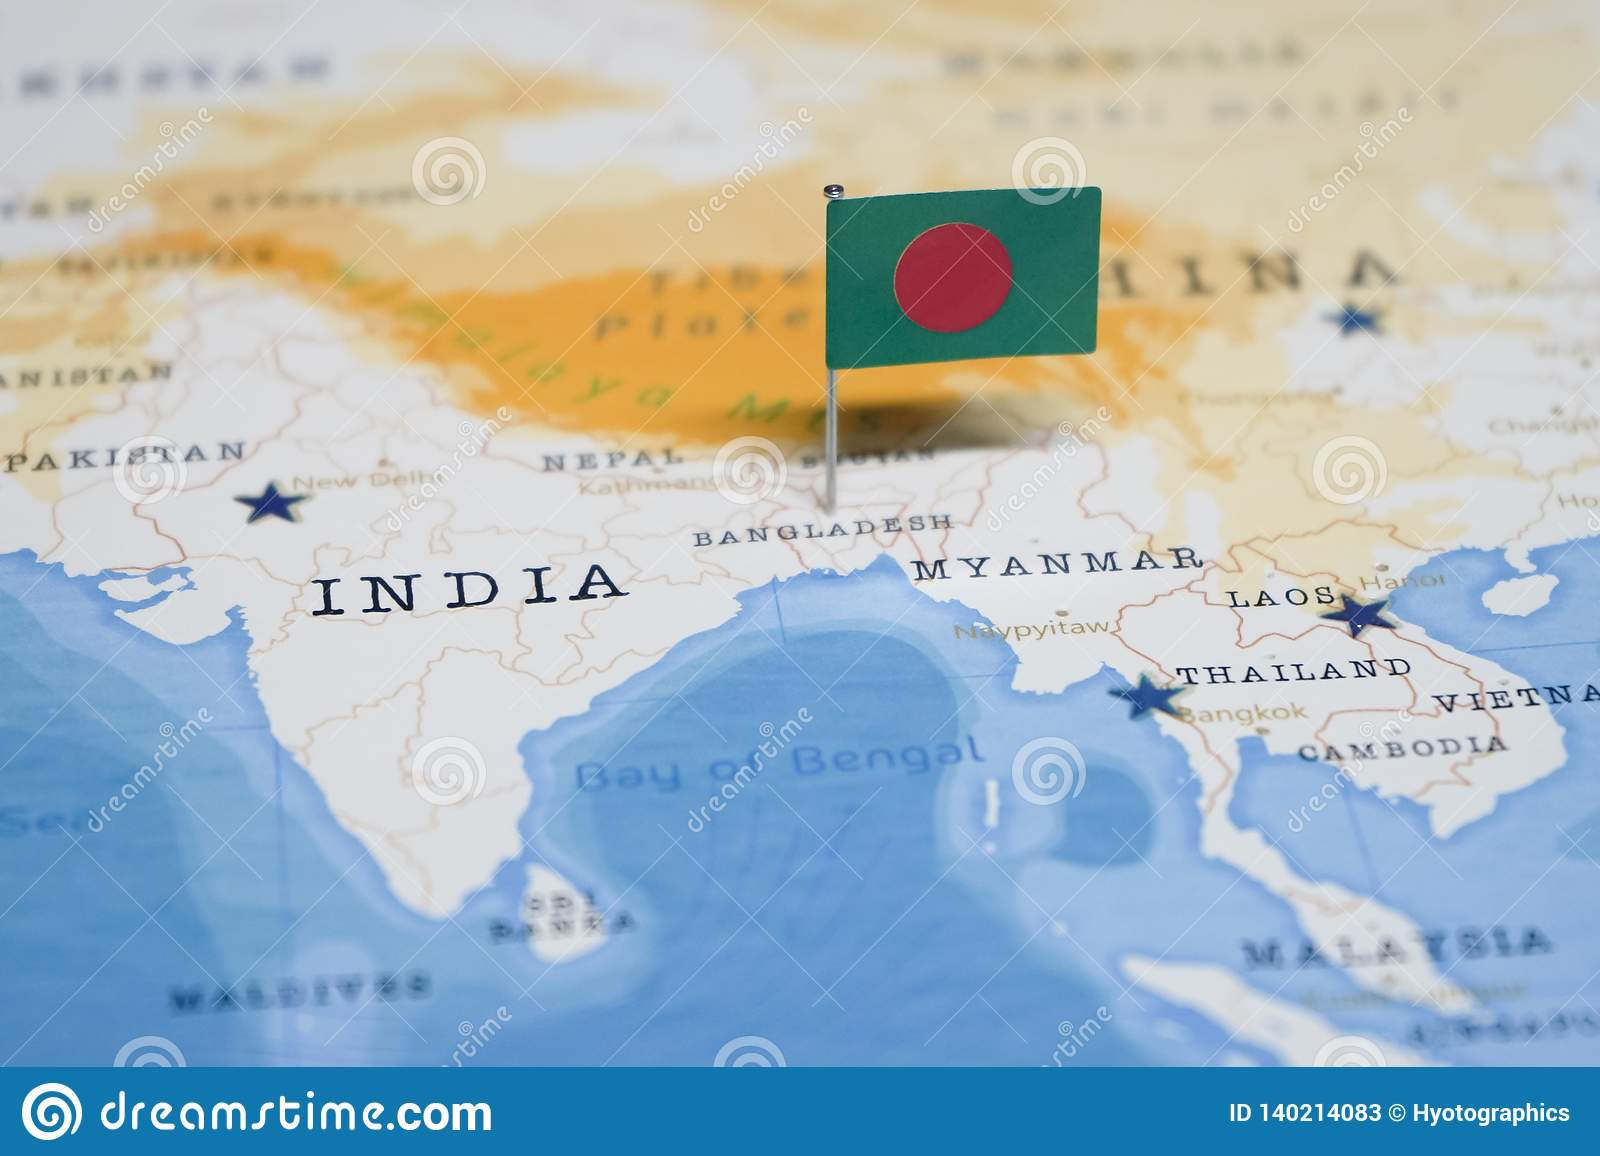 The Flag Of Bangladesh In The World Map Stock Image - Image ...